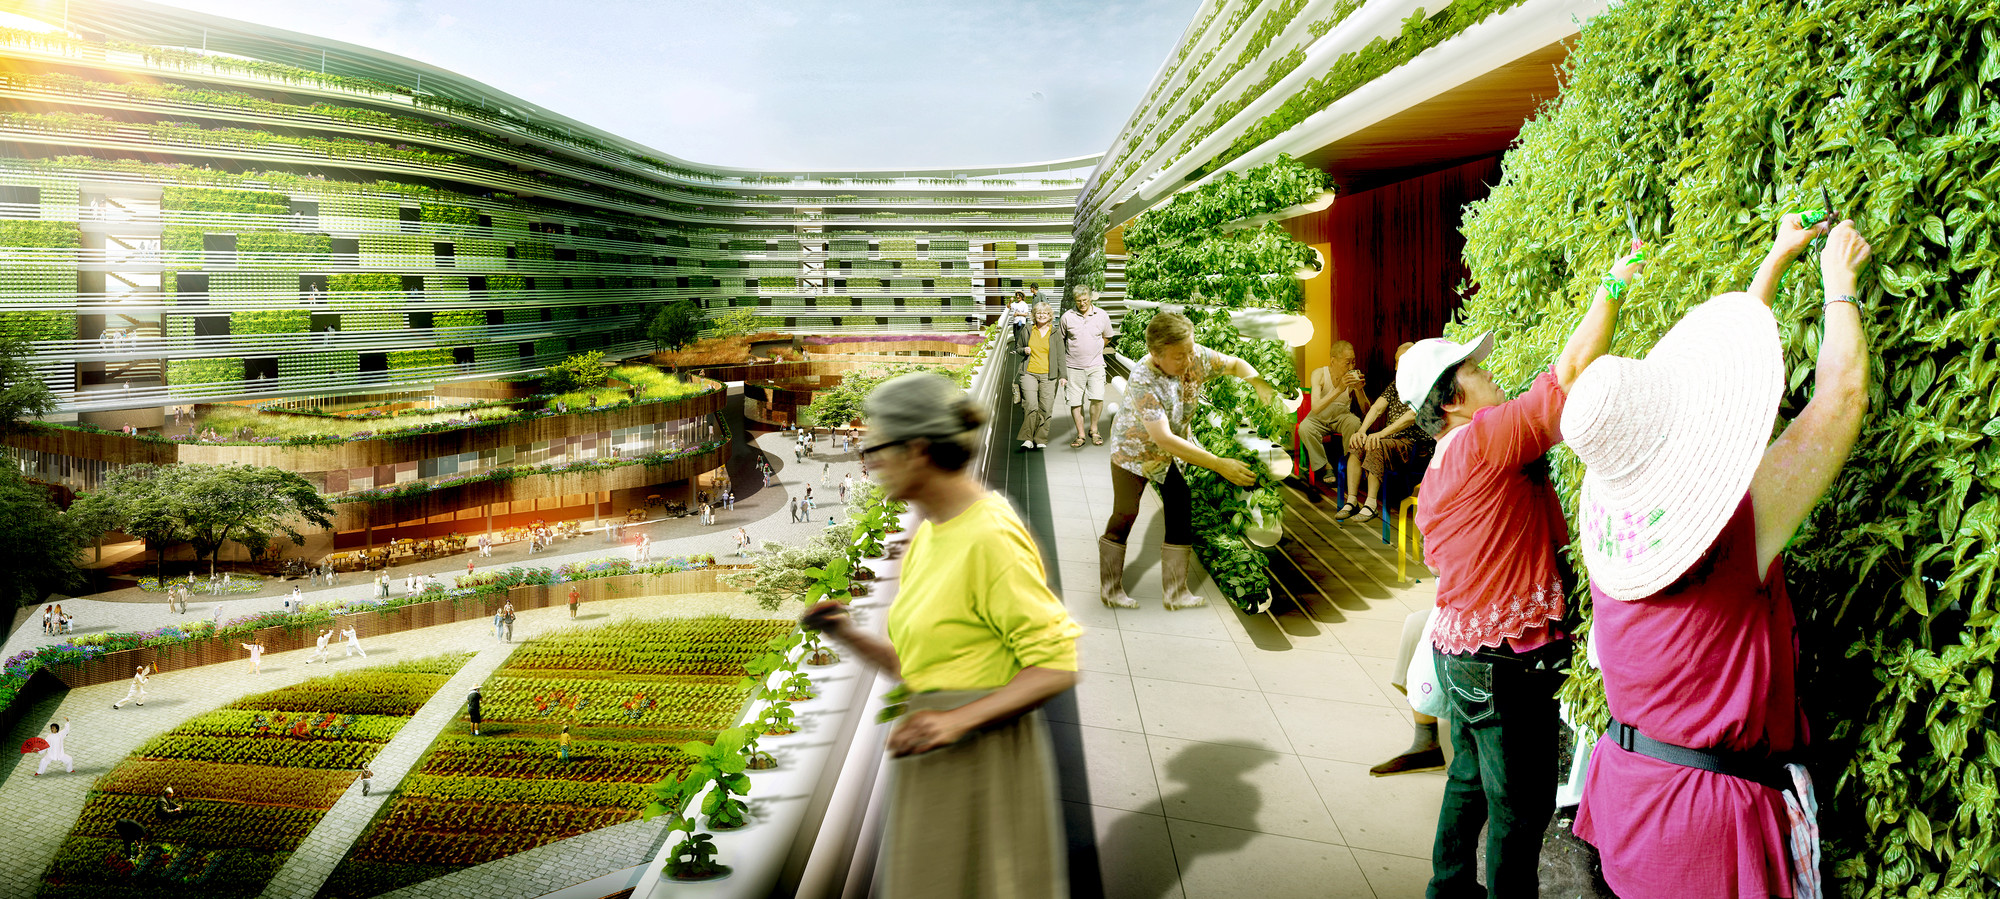 Gallery of SPARK Proposes Vertical Farming Hybrid to House Singapores Aging Population  4